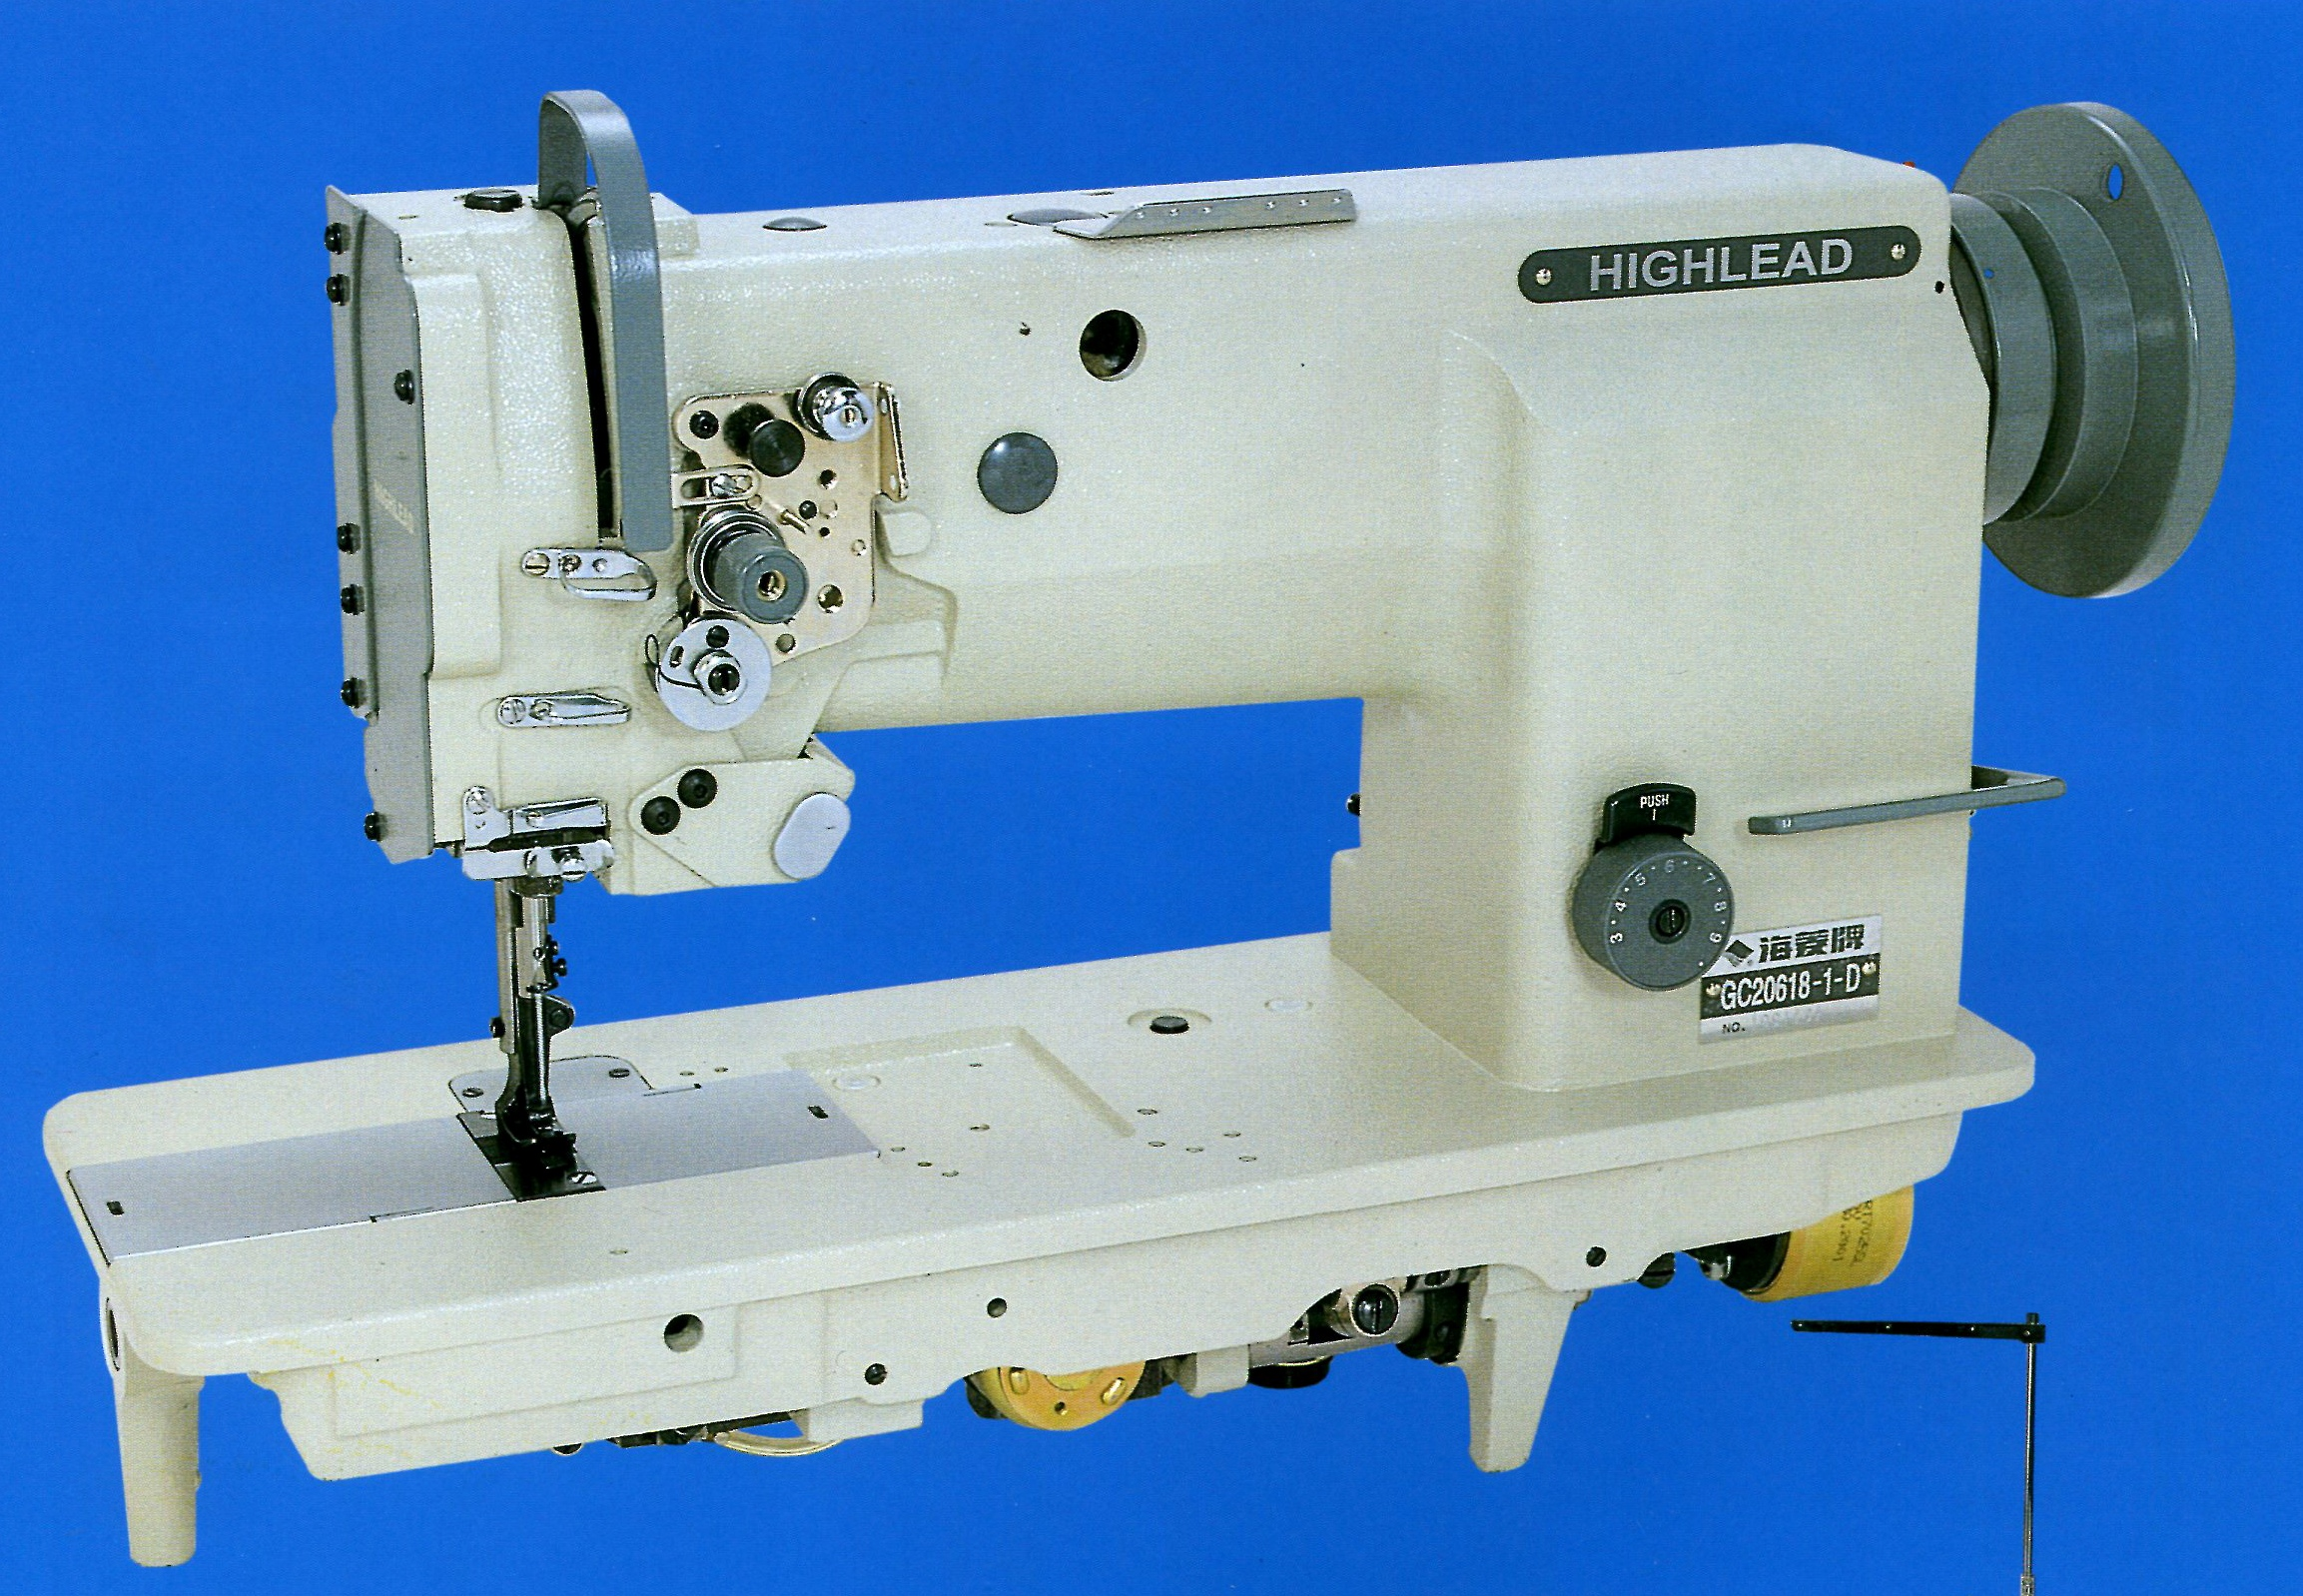 Highlead GC20618-1 & GC20618-2 Sewing Machines